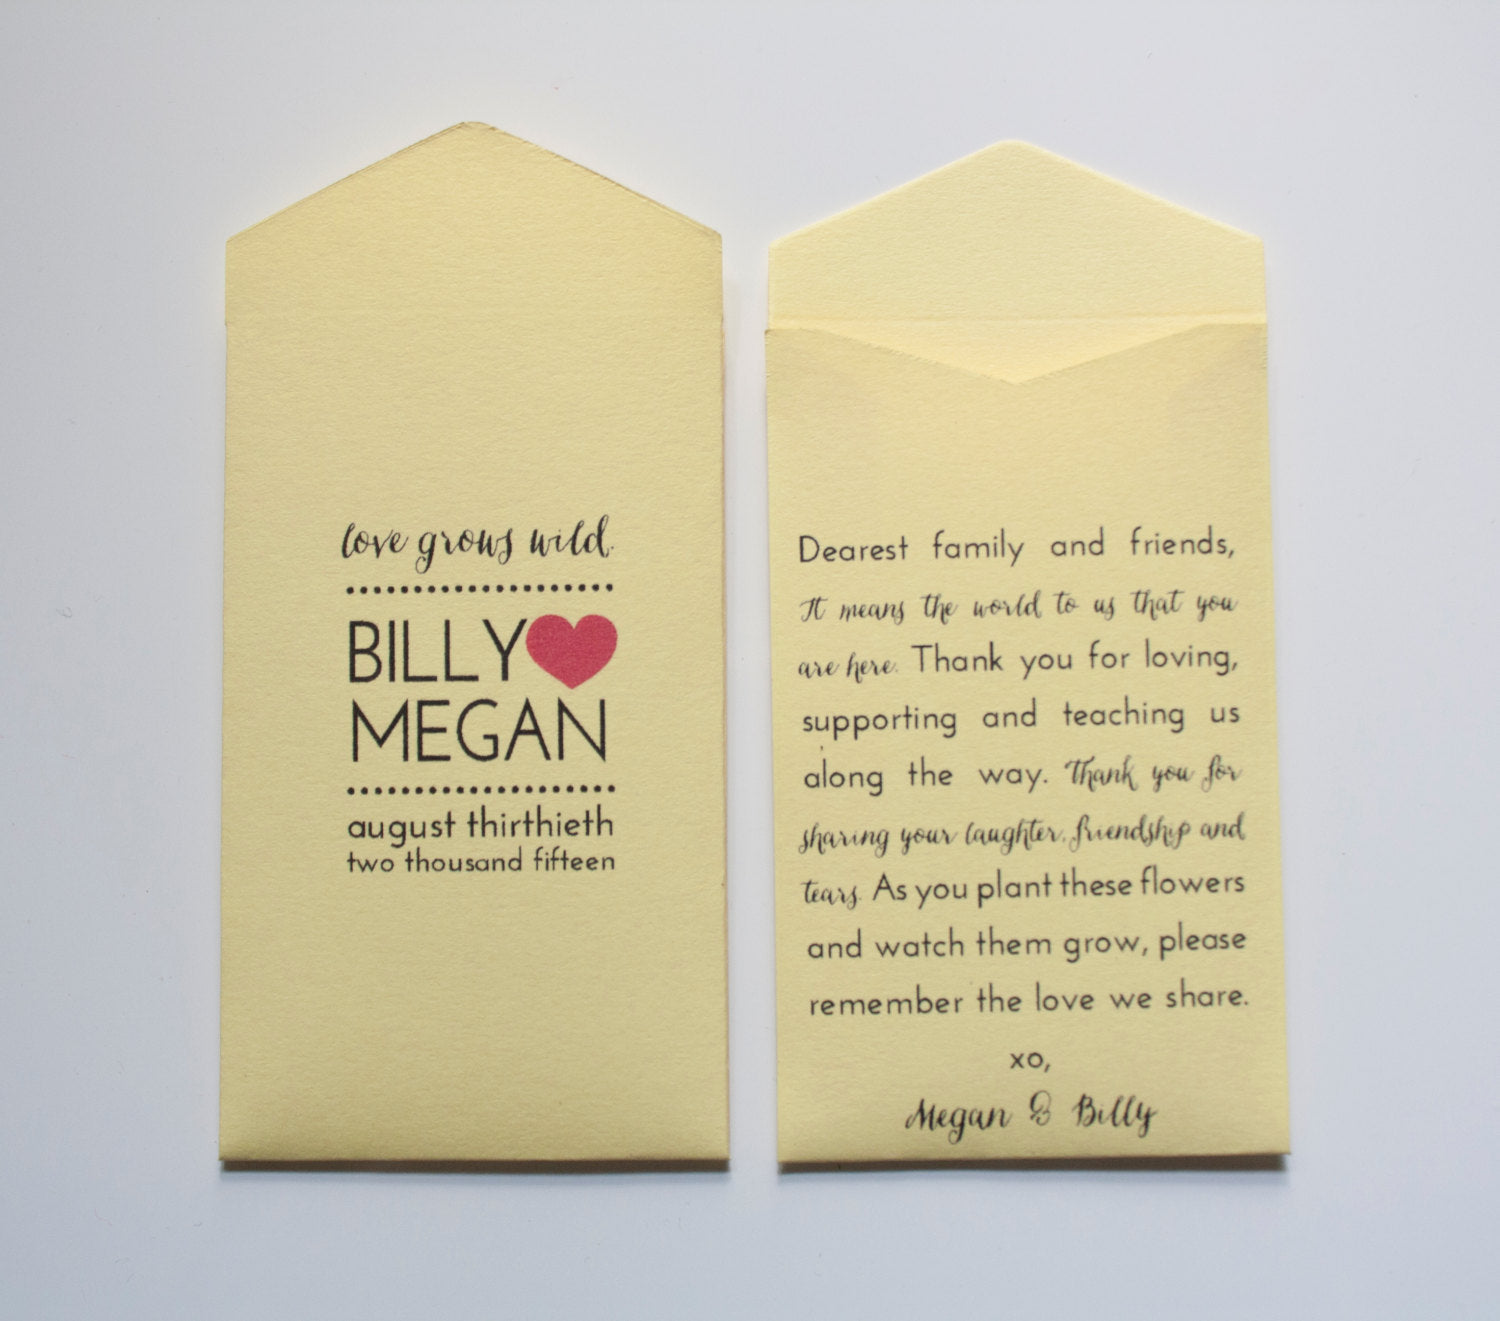 Love Grows Wild Custom Printed Yellow Wedding Favor Seed Packet Envelopes - Personalized Wedding Favors - Many Colors Available